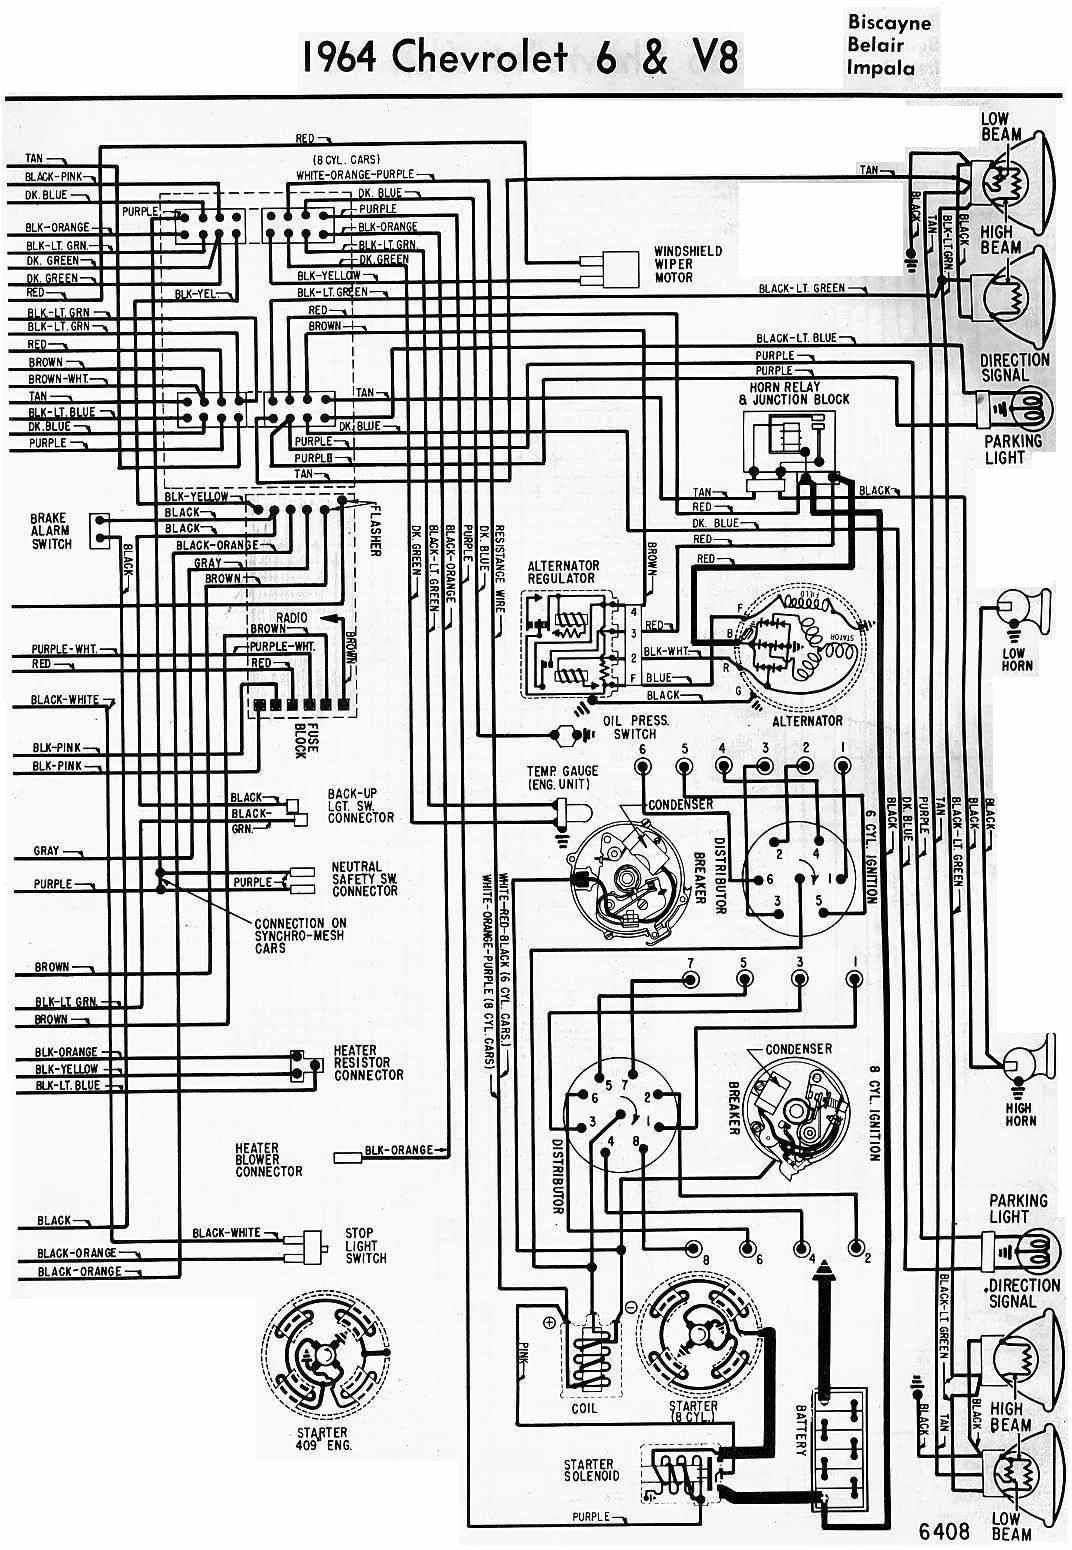 small resolution of 1964 impala ac wiring diagram simple wiring diagrams rh 30 studio011 de 2006 impala wiring diagram 2007 chevy impala ignition wiring diagram